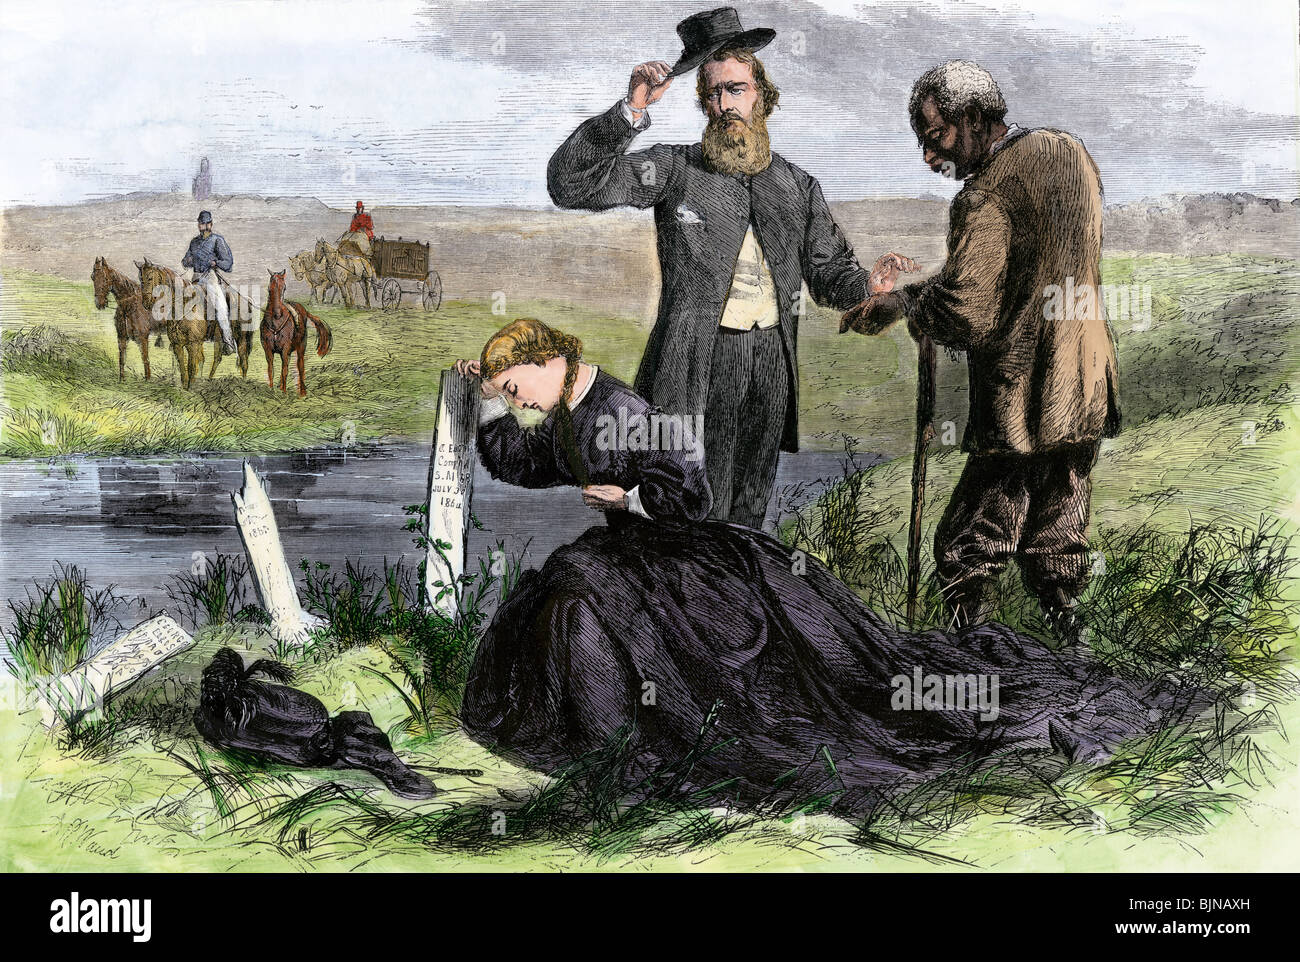 Southern couple with black servant grieving at a battlefield gravesite, 1860s. Hand-colored woodcut - Stock Image